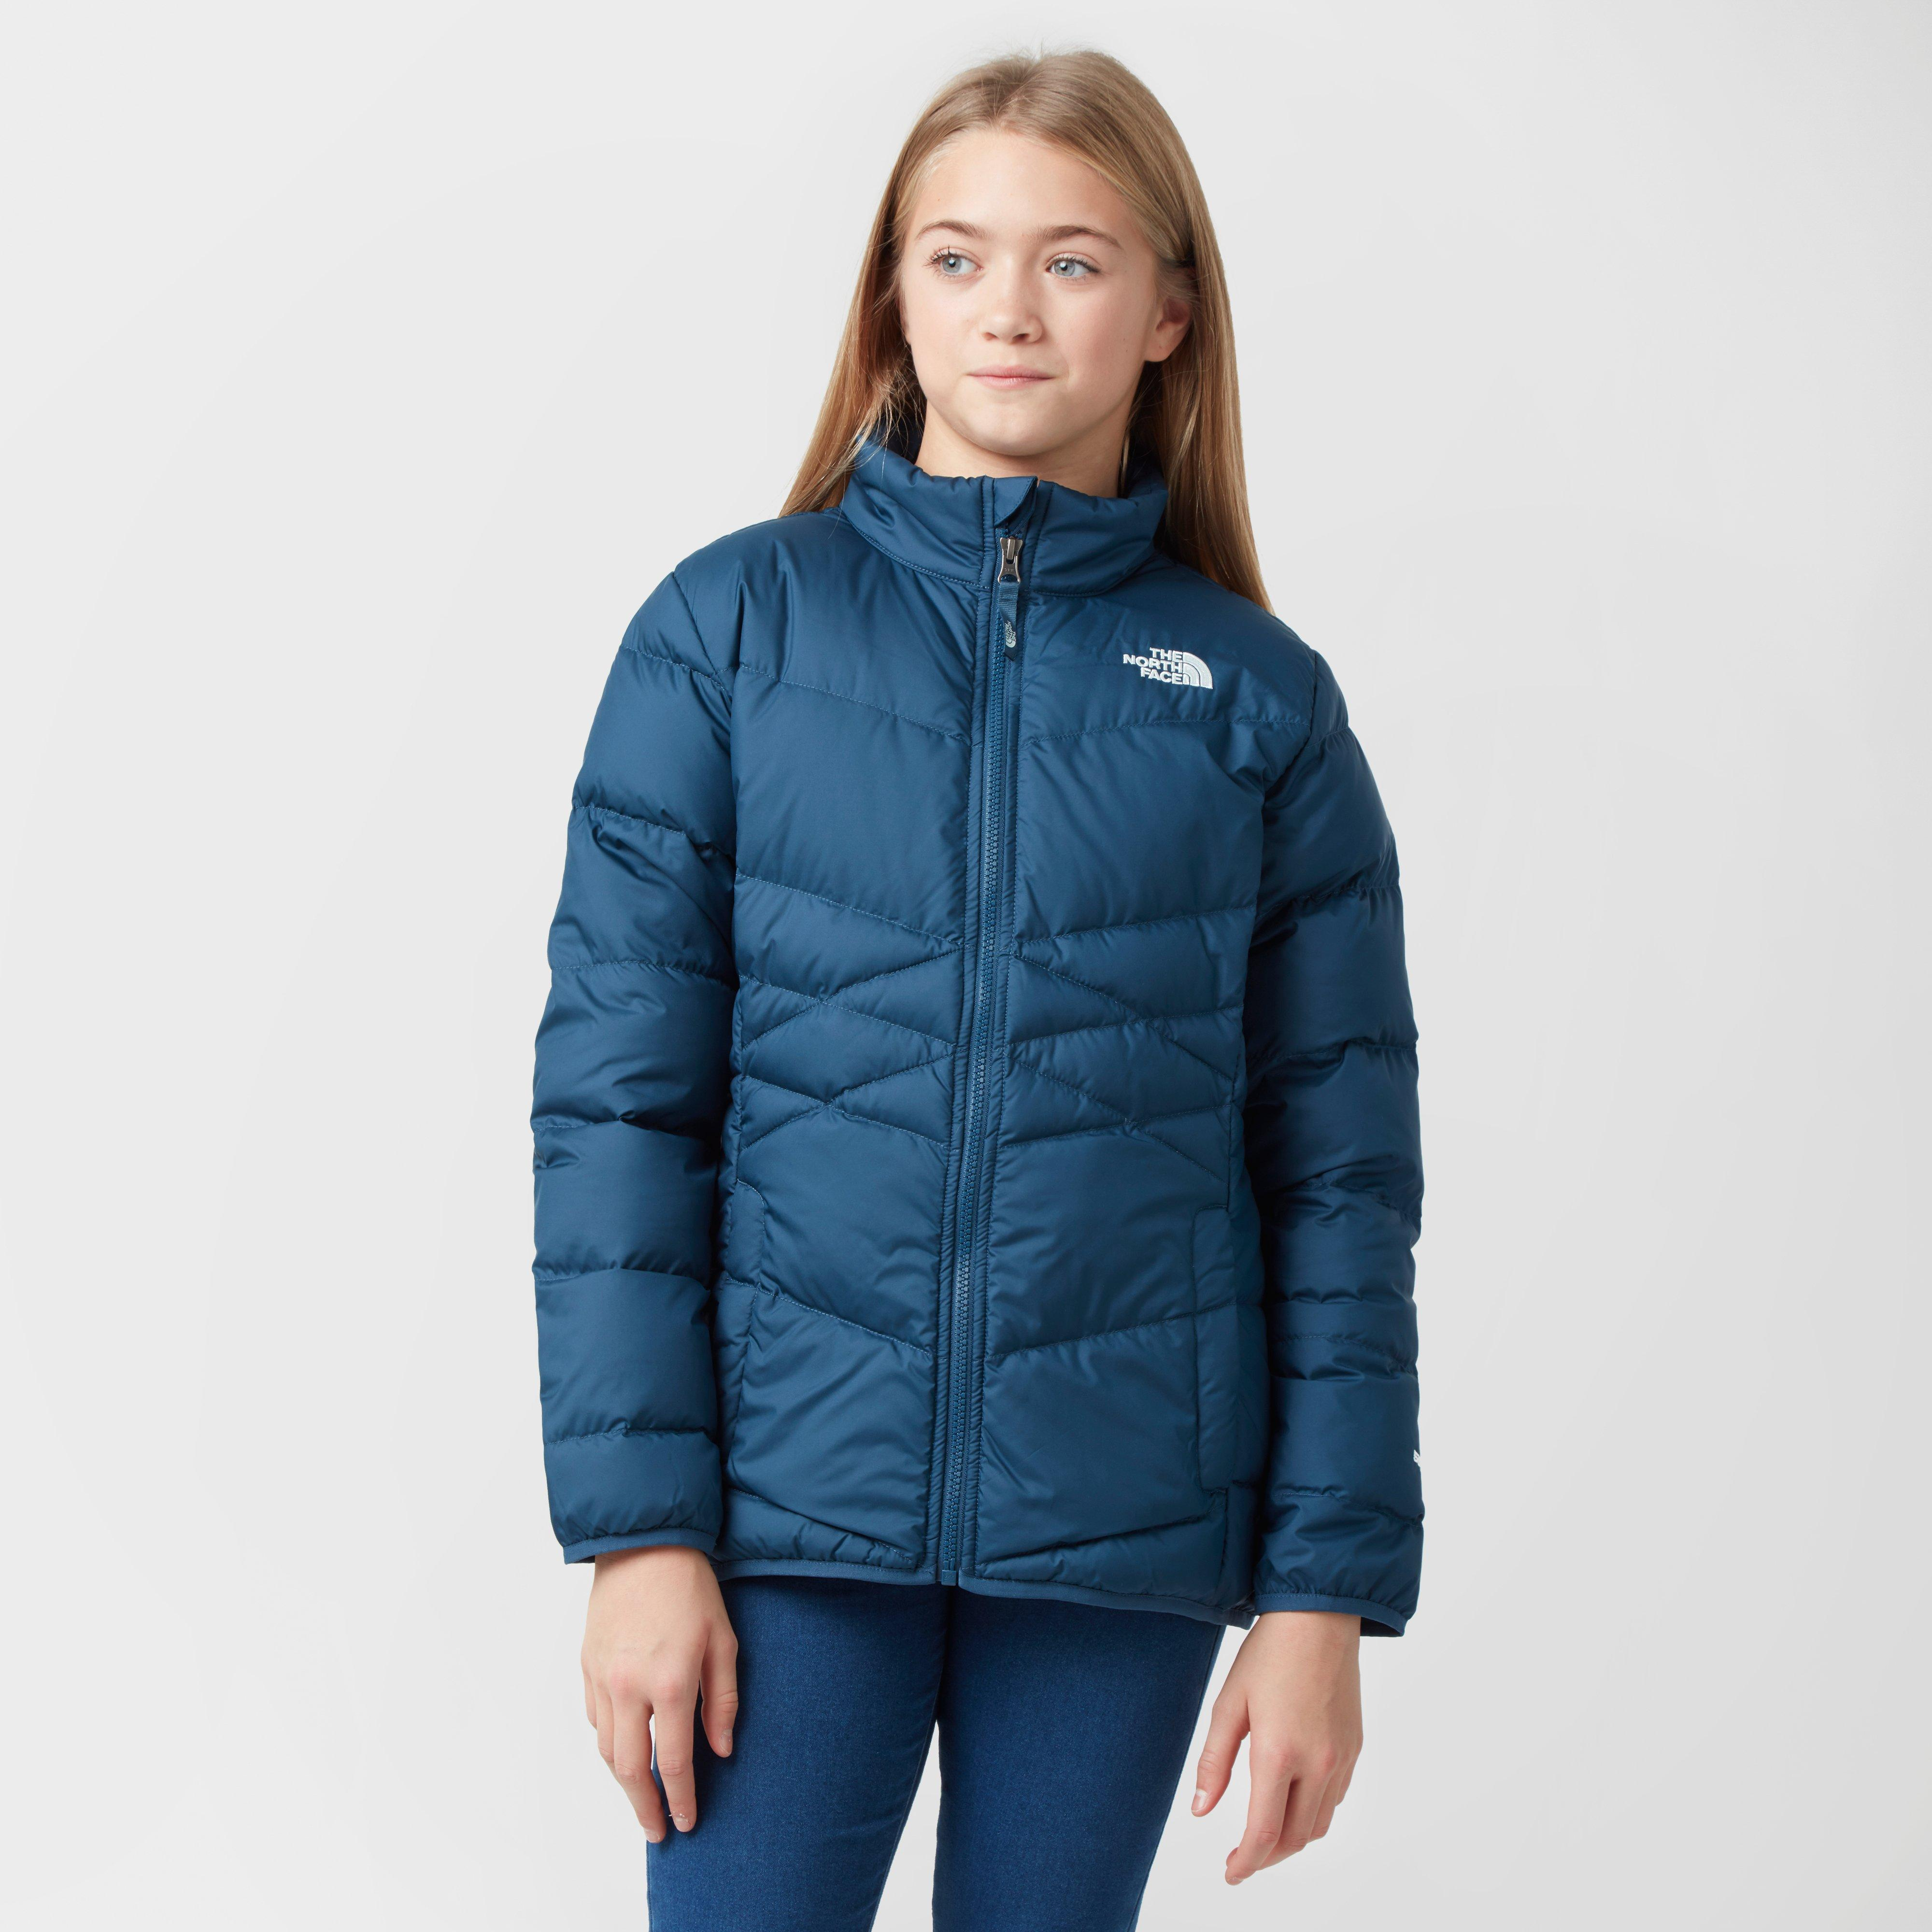 fff252071 The North Face Kids  Andes Down Jacket